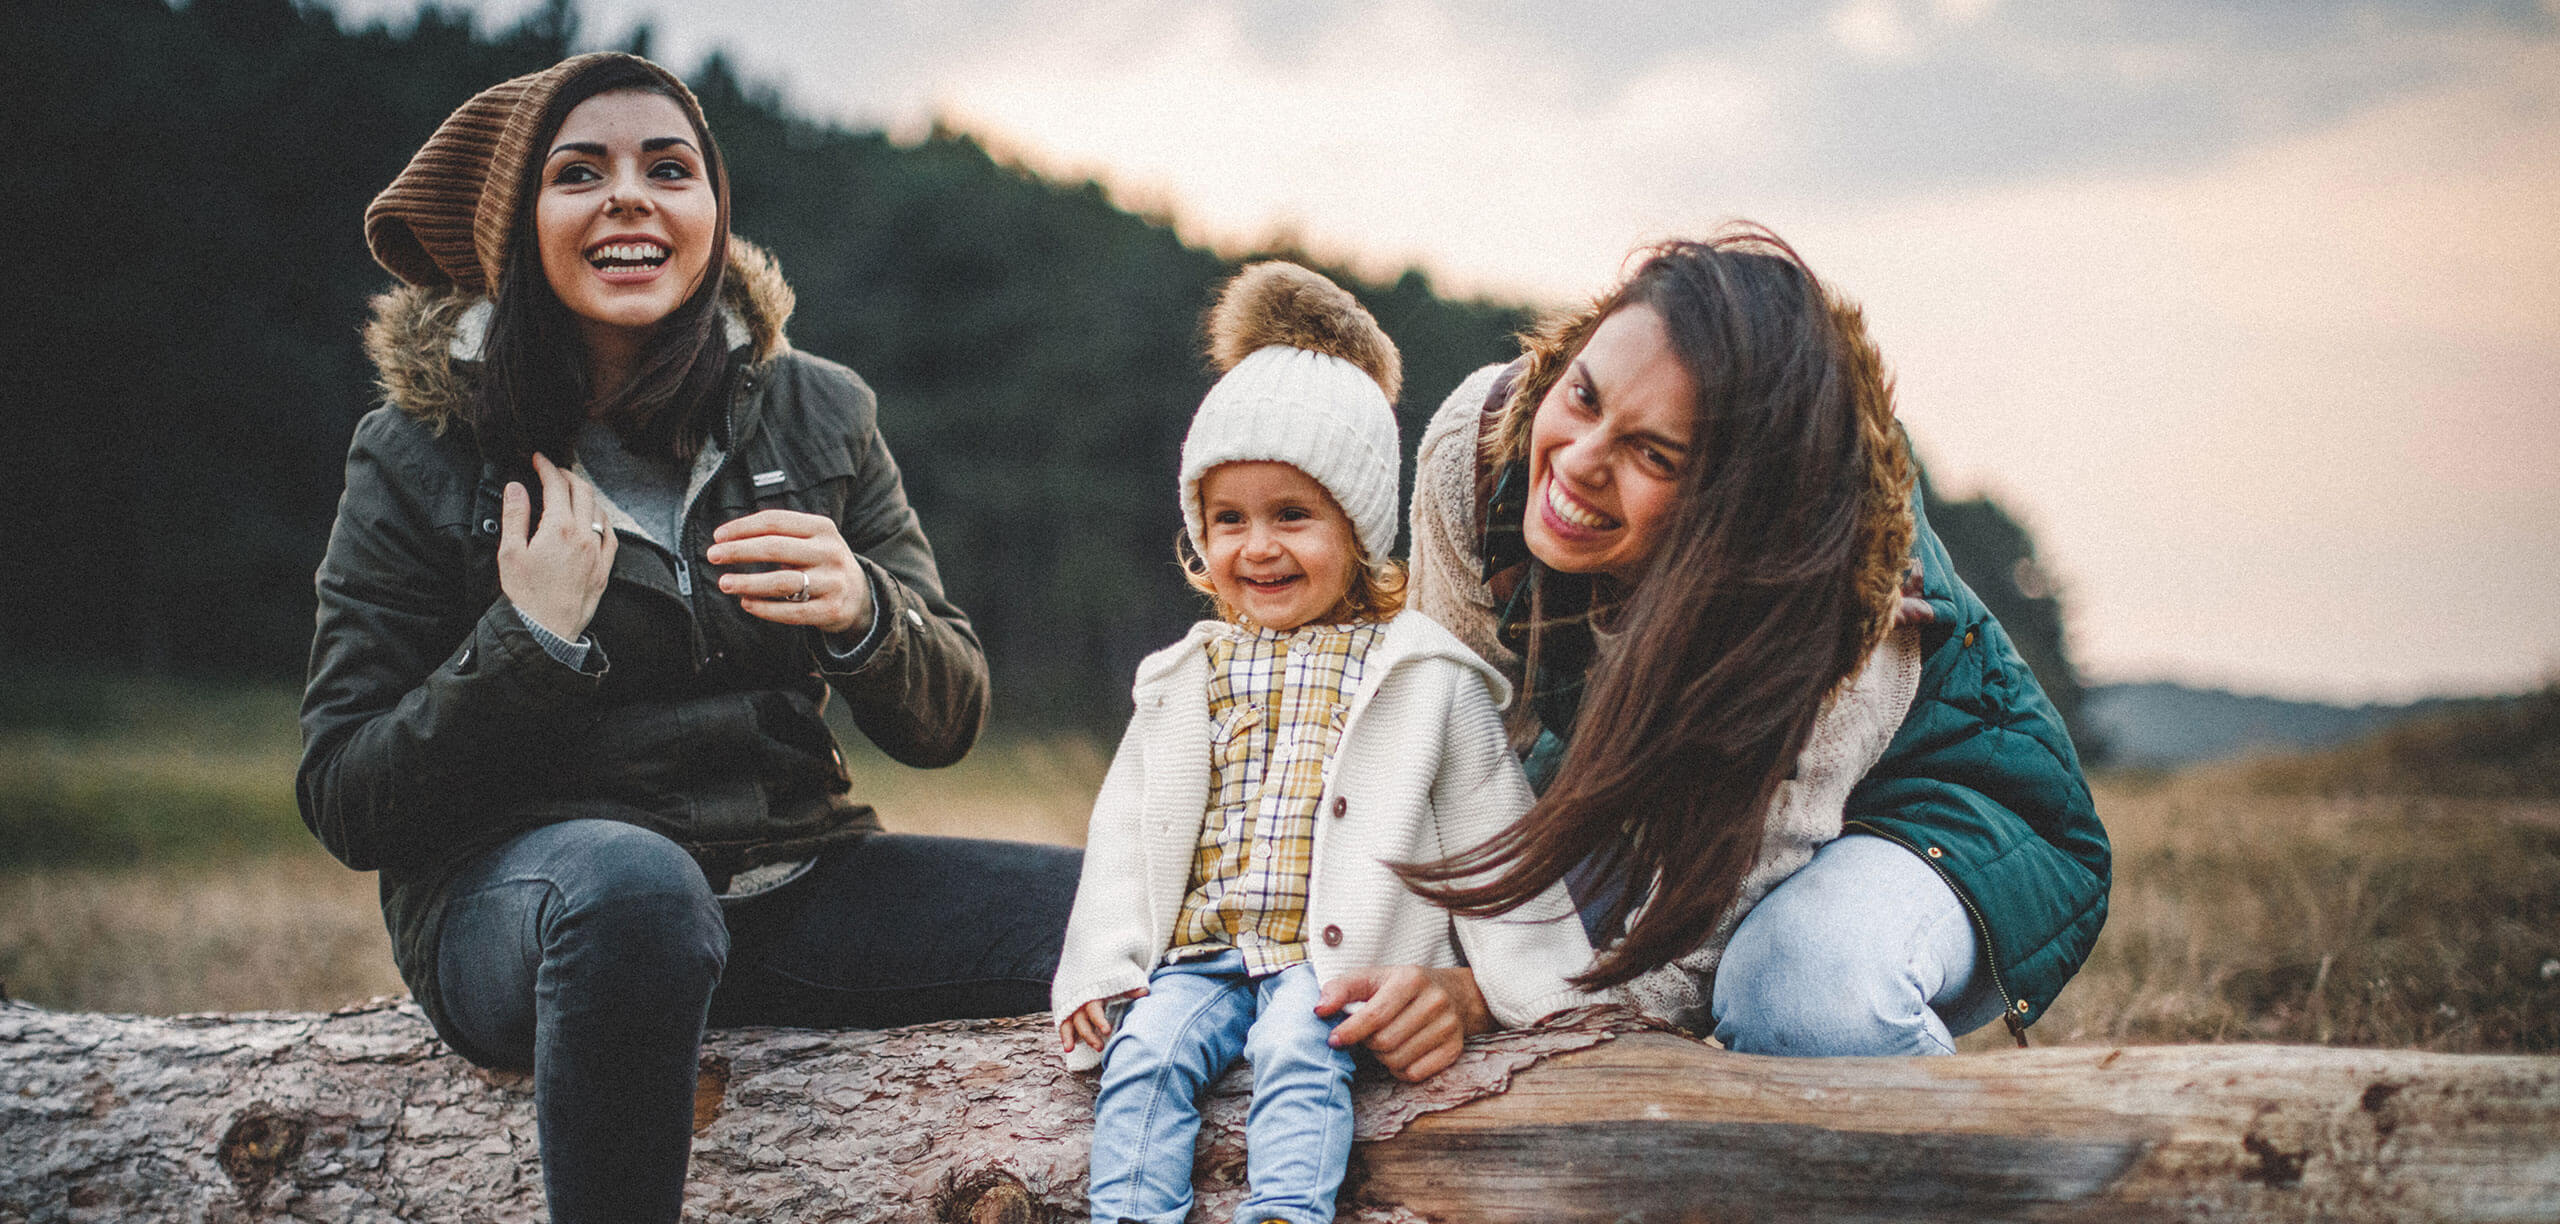 Same-sex couple enjoying nature with their toddler daughter. Caucasian or Hispanic ethnicity, brown hair, wearing jackets, hats, and hiking boots. Late Autumn day.